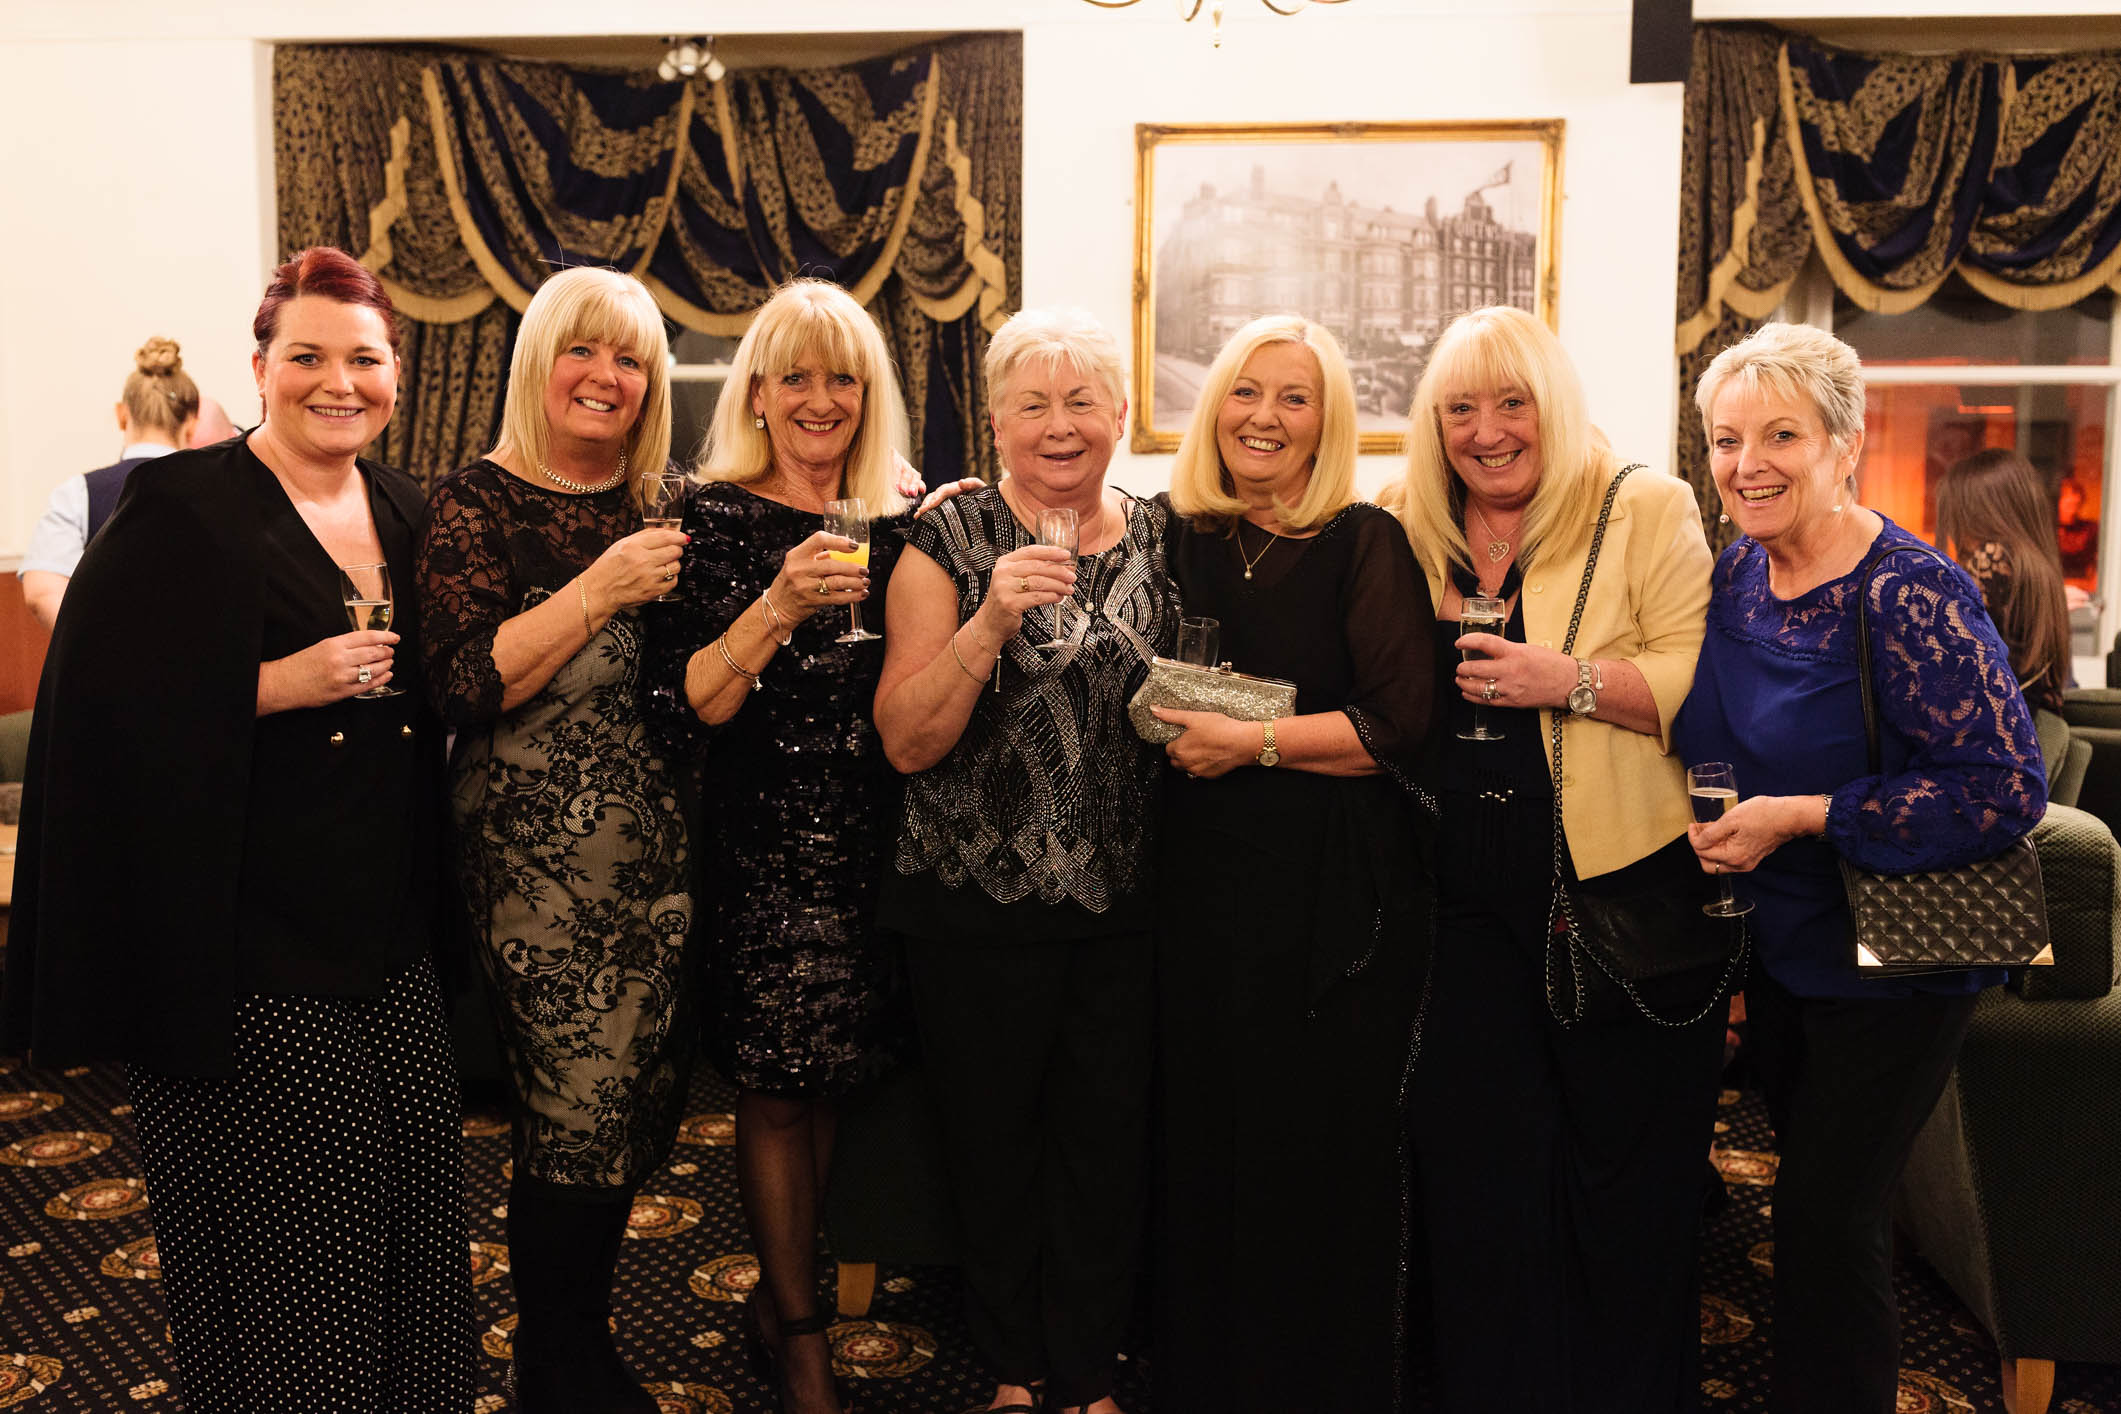 Event Photography - Event photography services. From that special birthday to the latest business awards night I can cover it for you. Professional event photography provided in Stockport, Manchester and UK Wide.